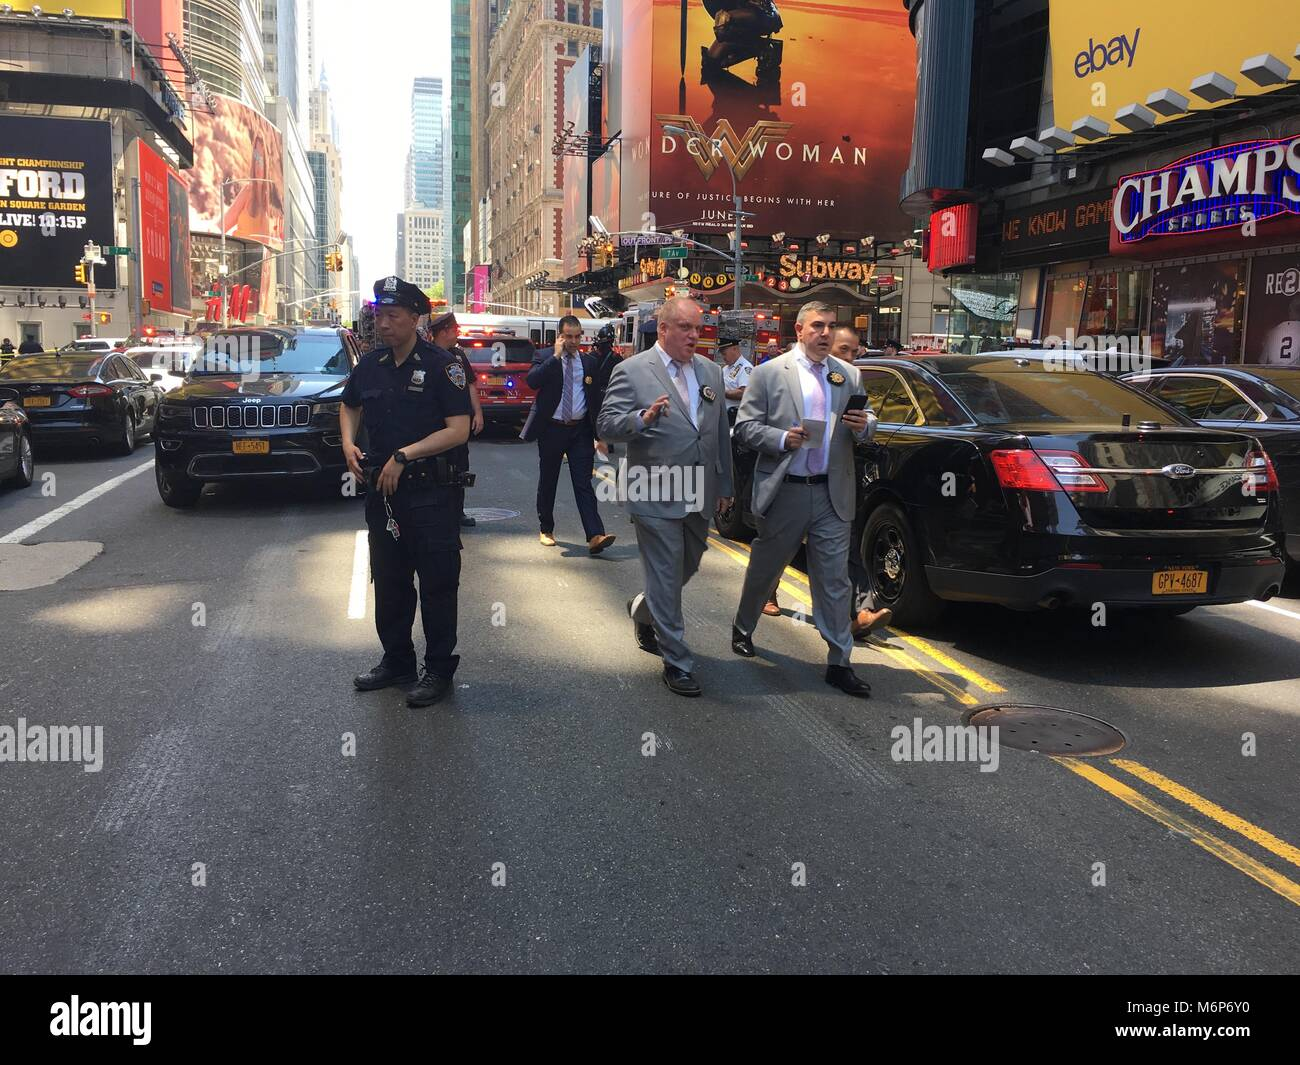 new york city - may 2017: times square car accident kills and